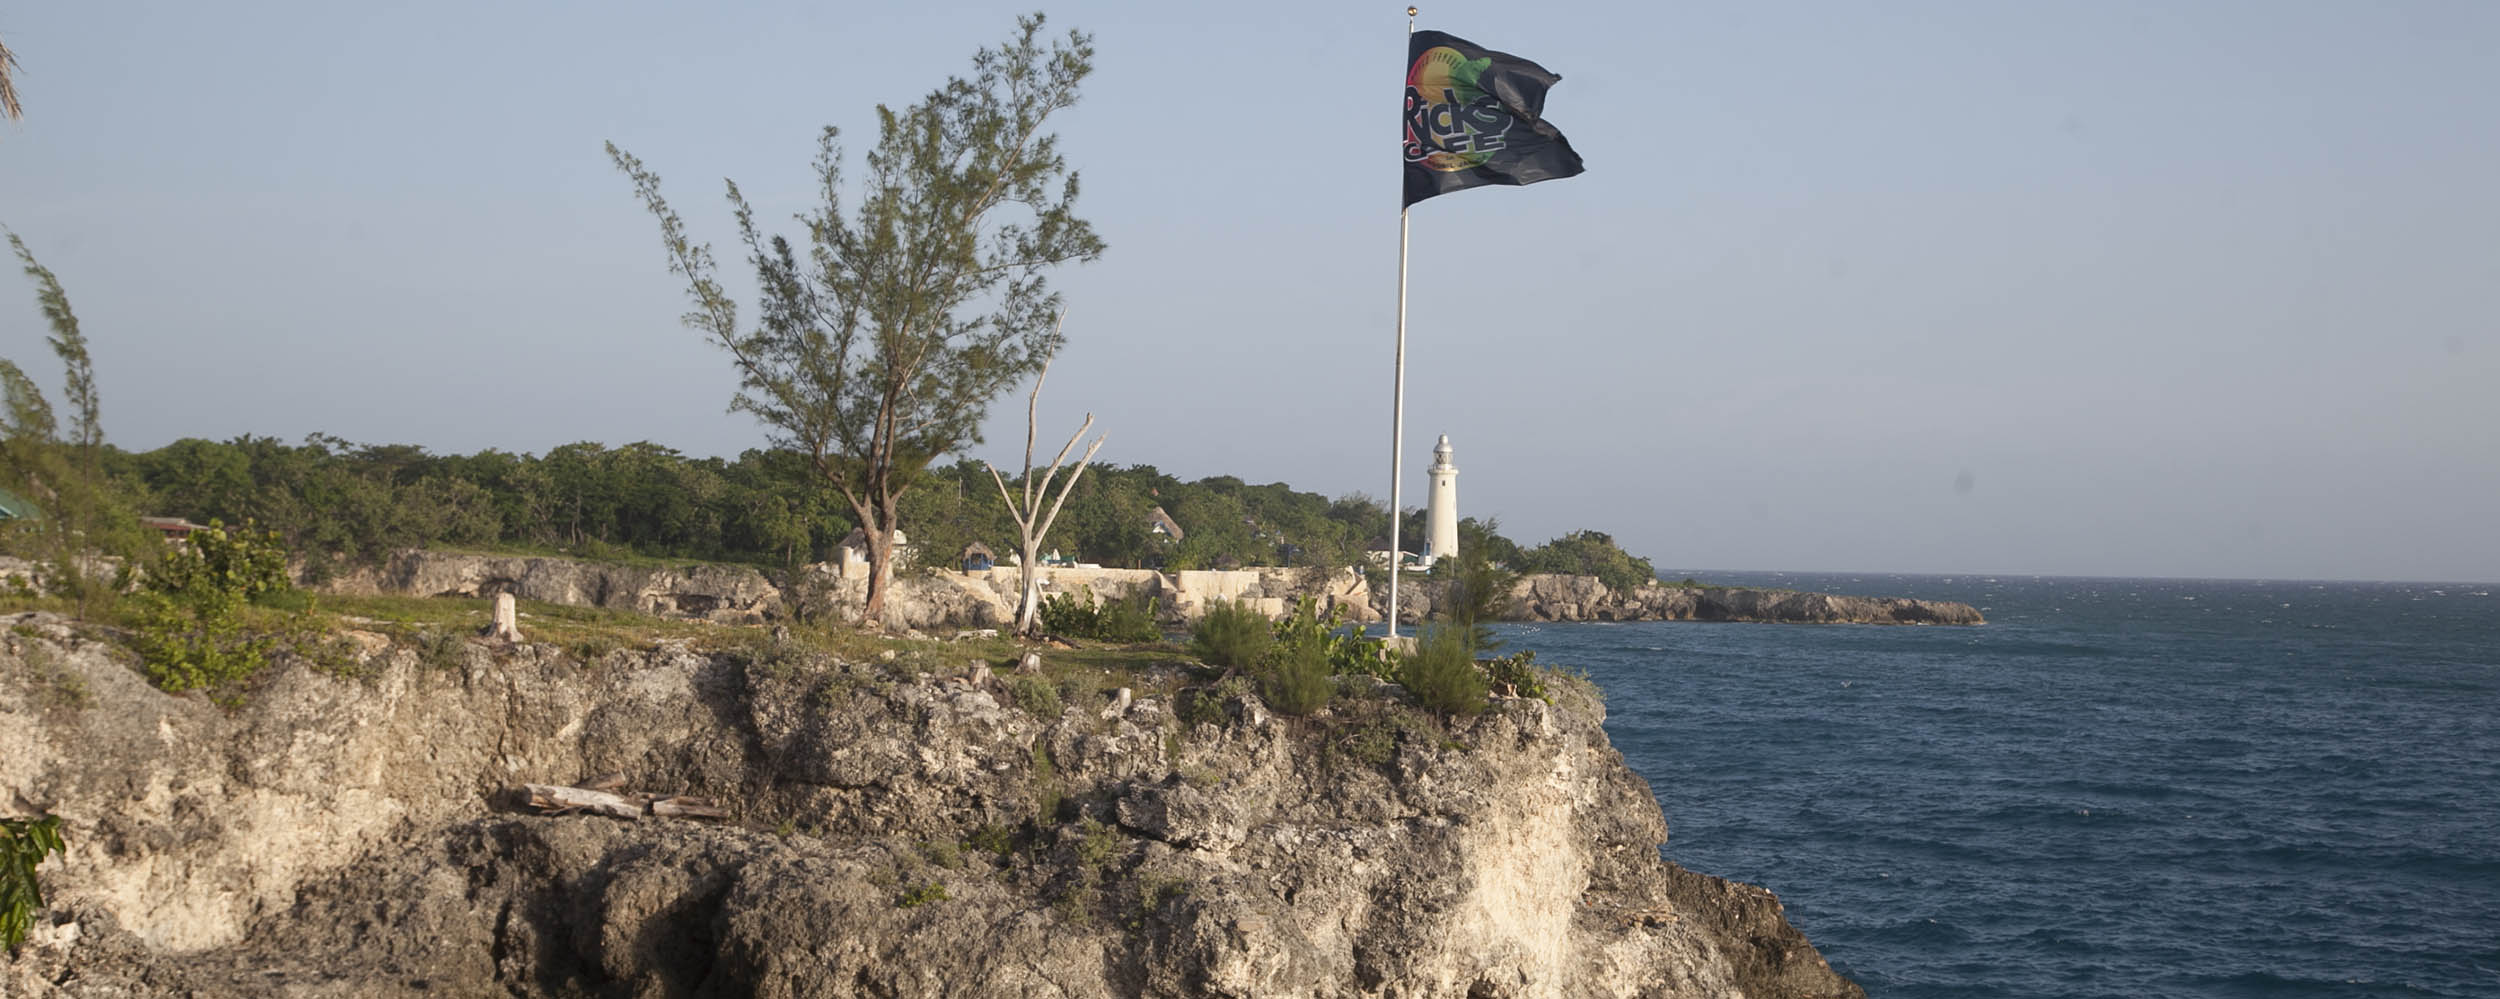 Negril Lighthouse - Rick's Cafe´, West End Cliffs - Negril Jamaica